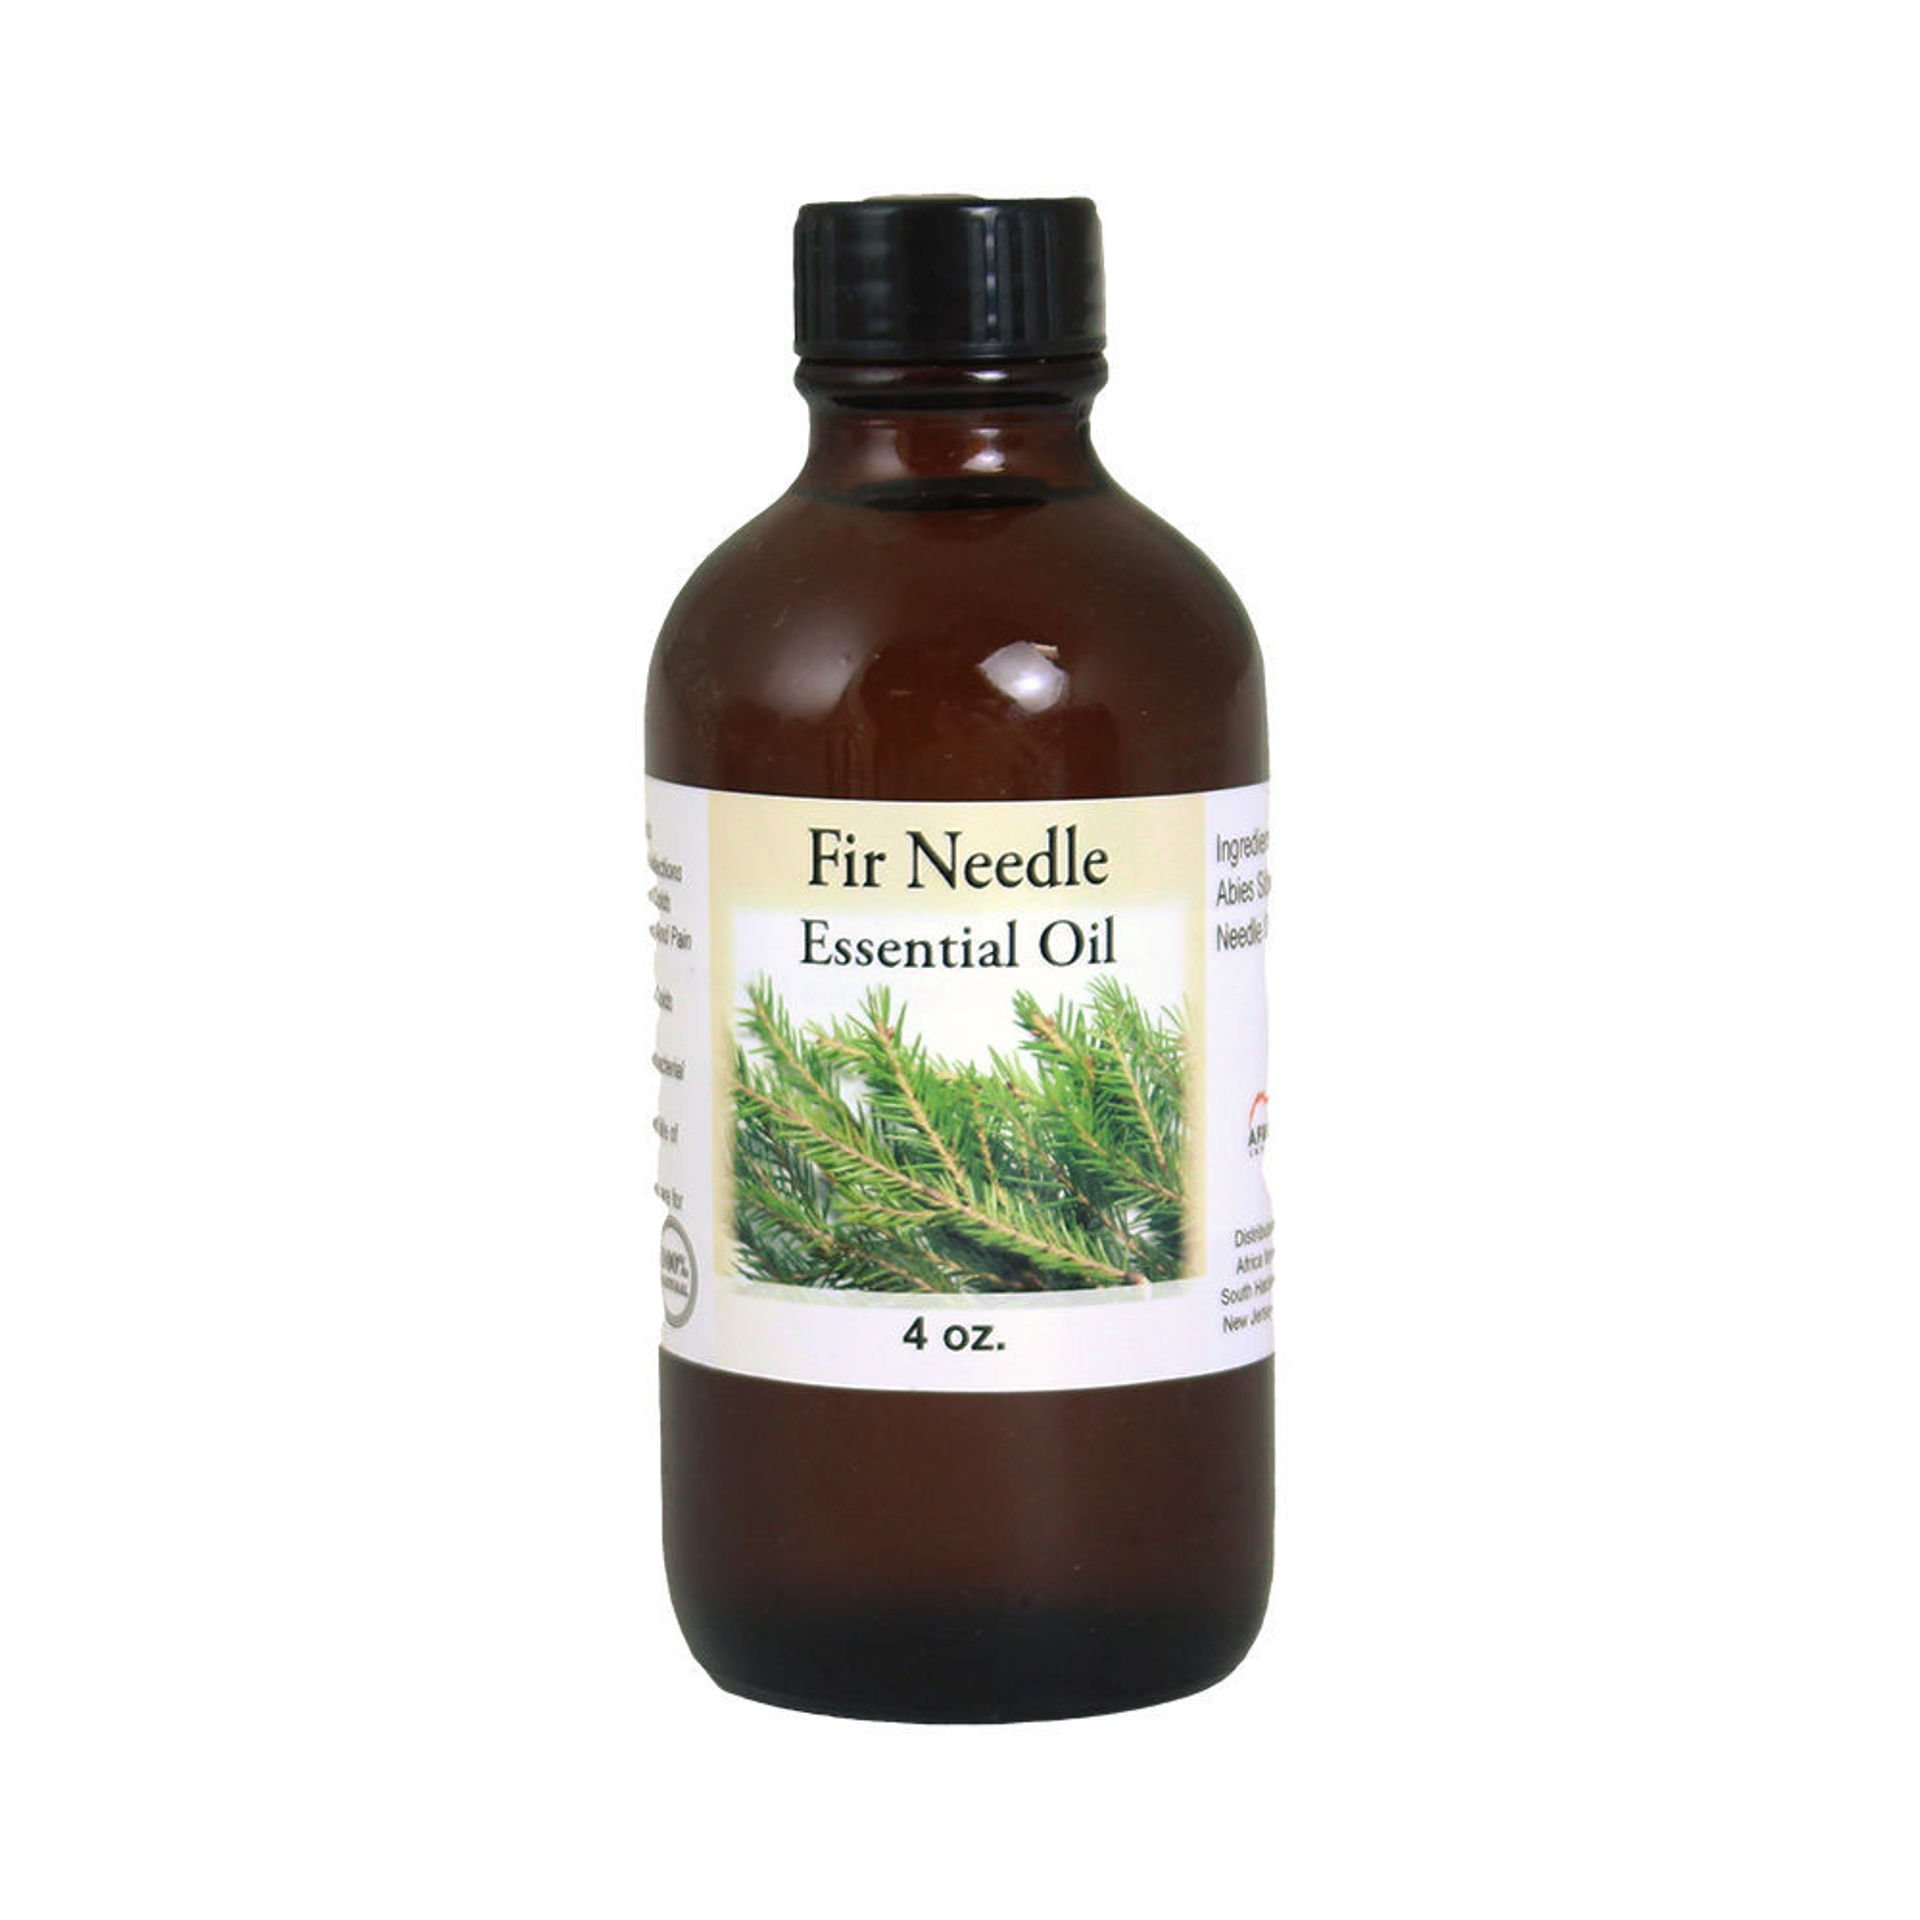 Picture of Fir Needle Essential Oil - 4 oz.